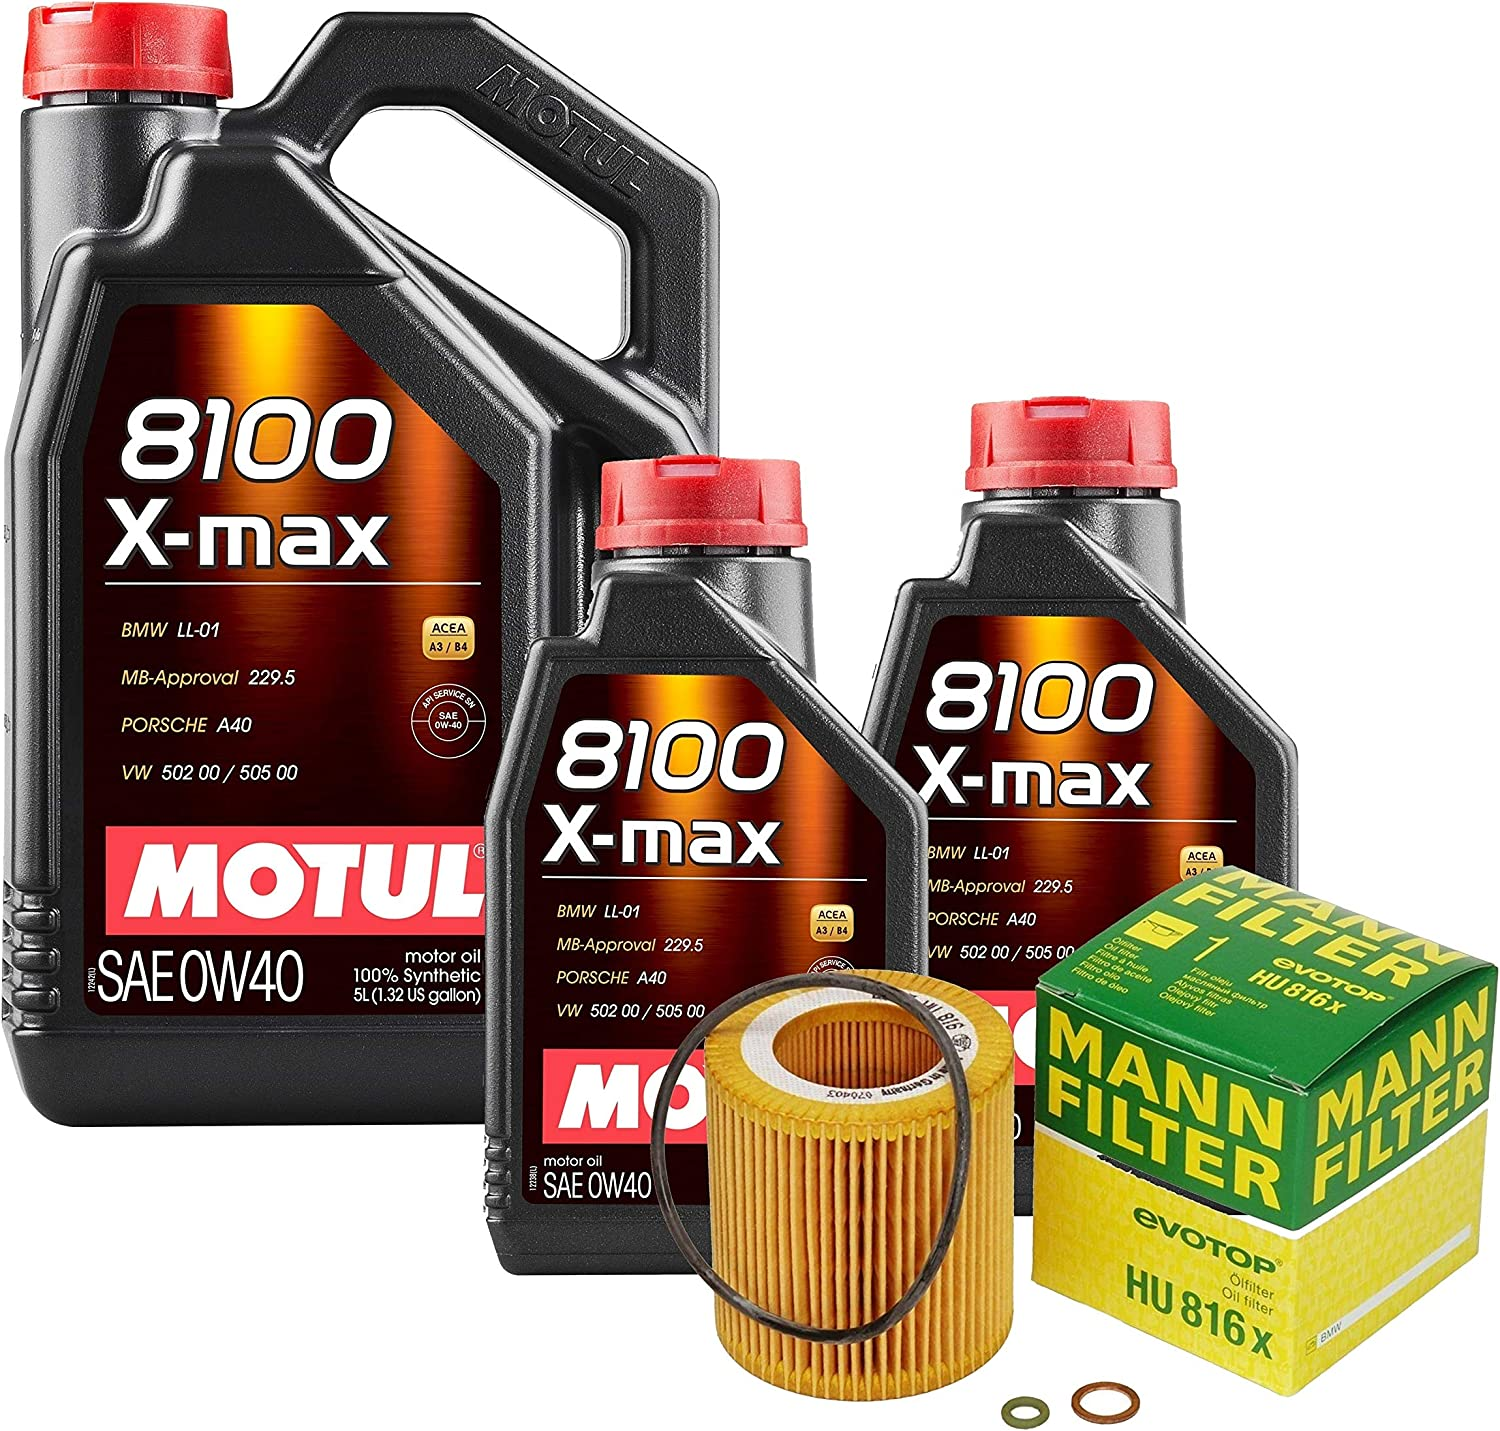 7L 8100 Xmax 0W40 Spring new work Max 69% OFF Filter Motor 5 Change Kit Oil F10 ActiveHybrid